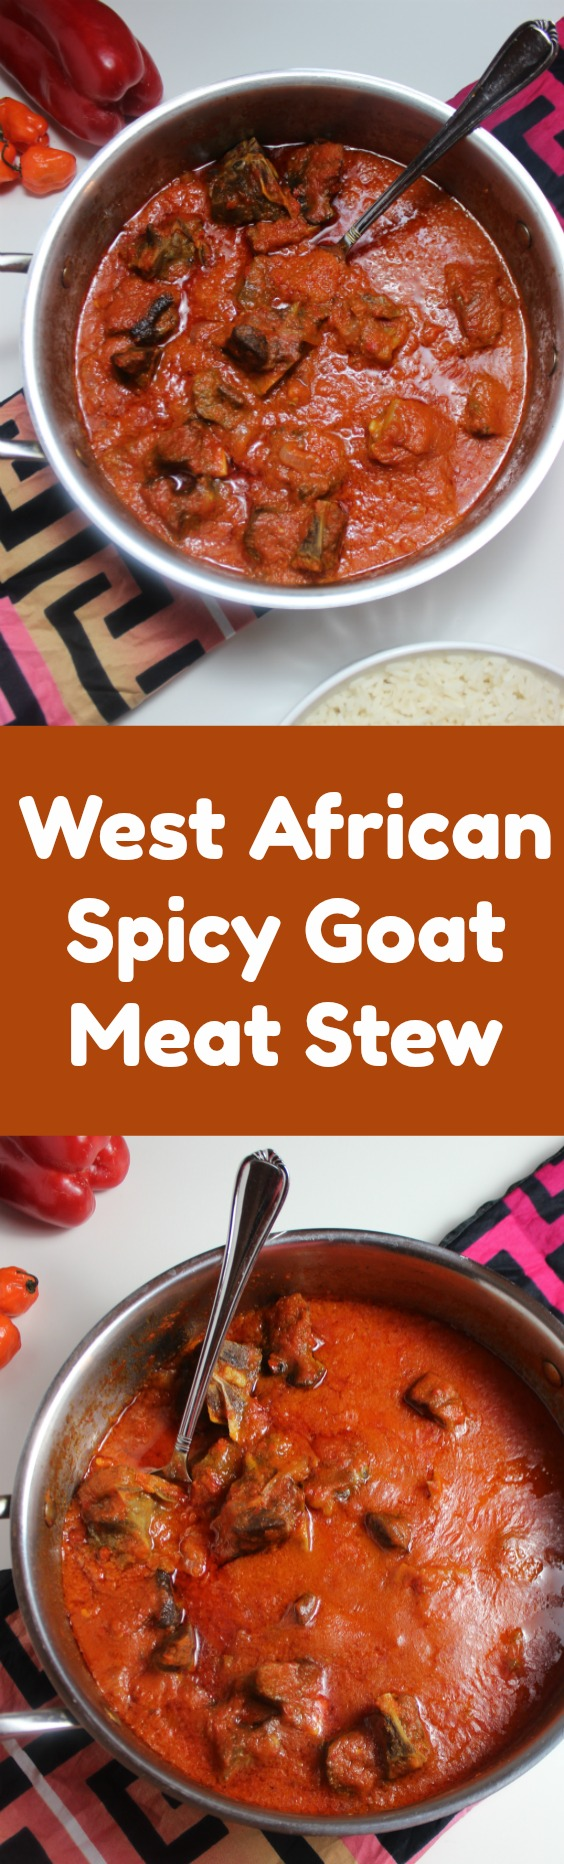 West African Spicy Goat Meat Stew – tender to the bone, insanely delicious and chuck full of flavor! So easy to make with minimal prep and a favorite at any African household. Impress with a an authentic dish. Paired fabulously with rice.